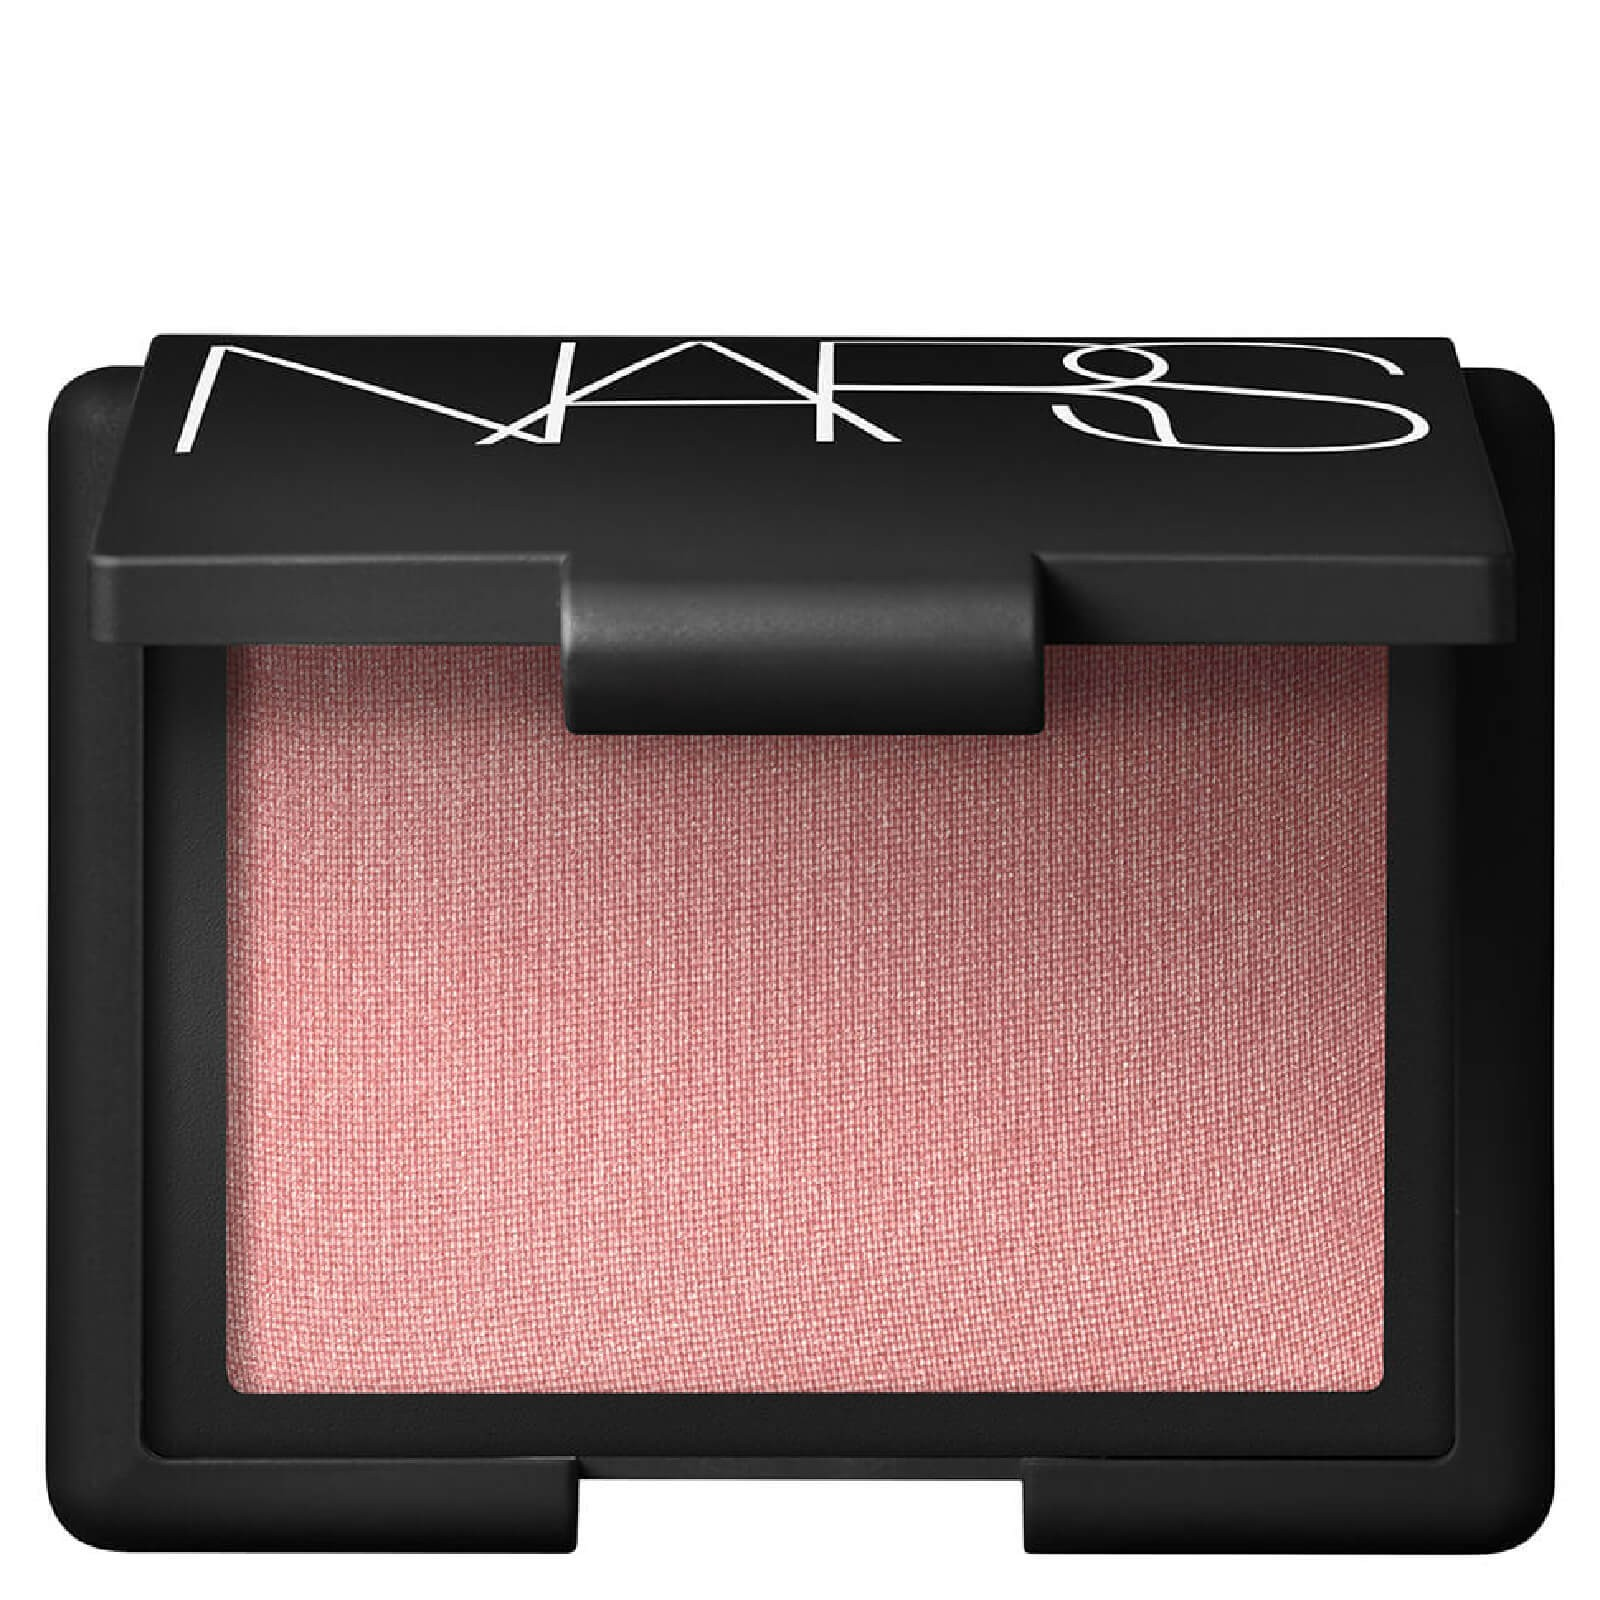 Blush NARS Cosmetics